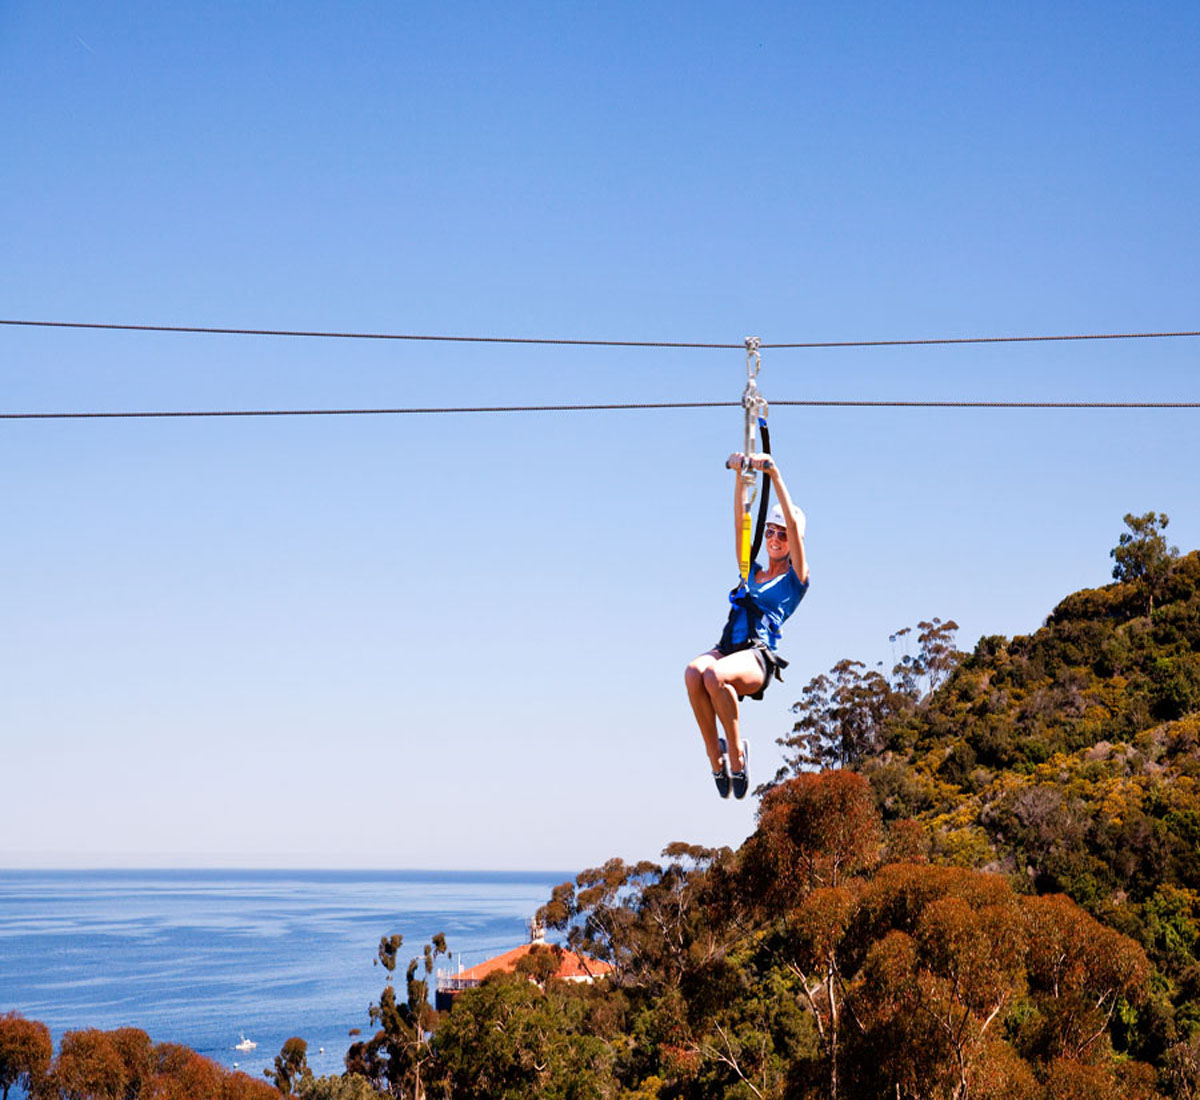 One of the zip lines on the Zip Line Eco Tour